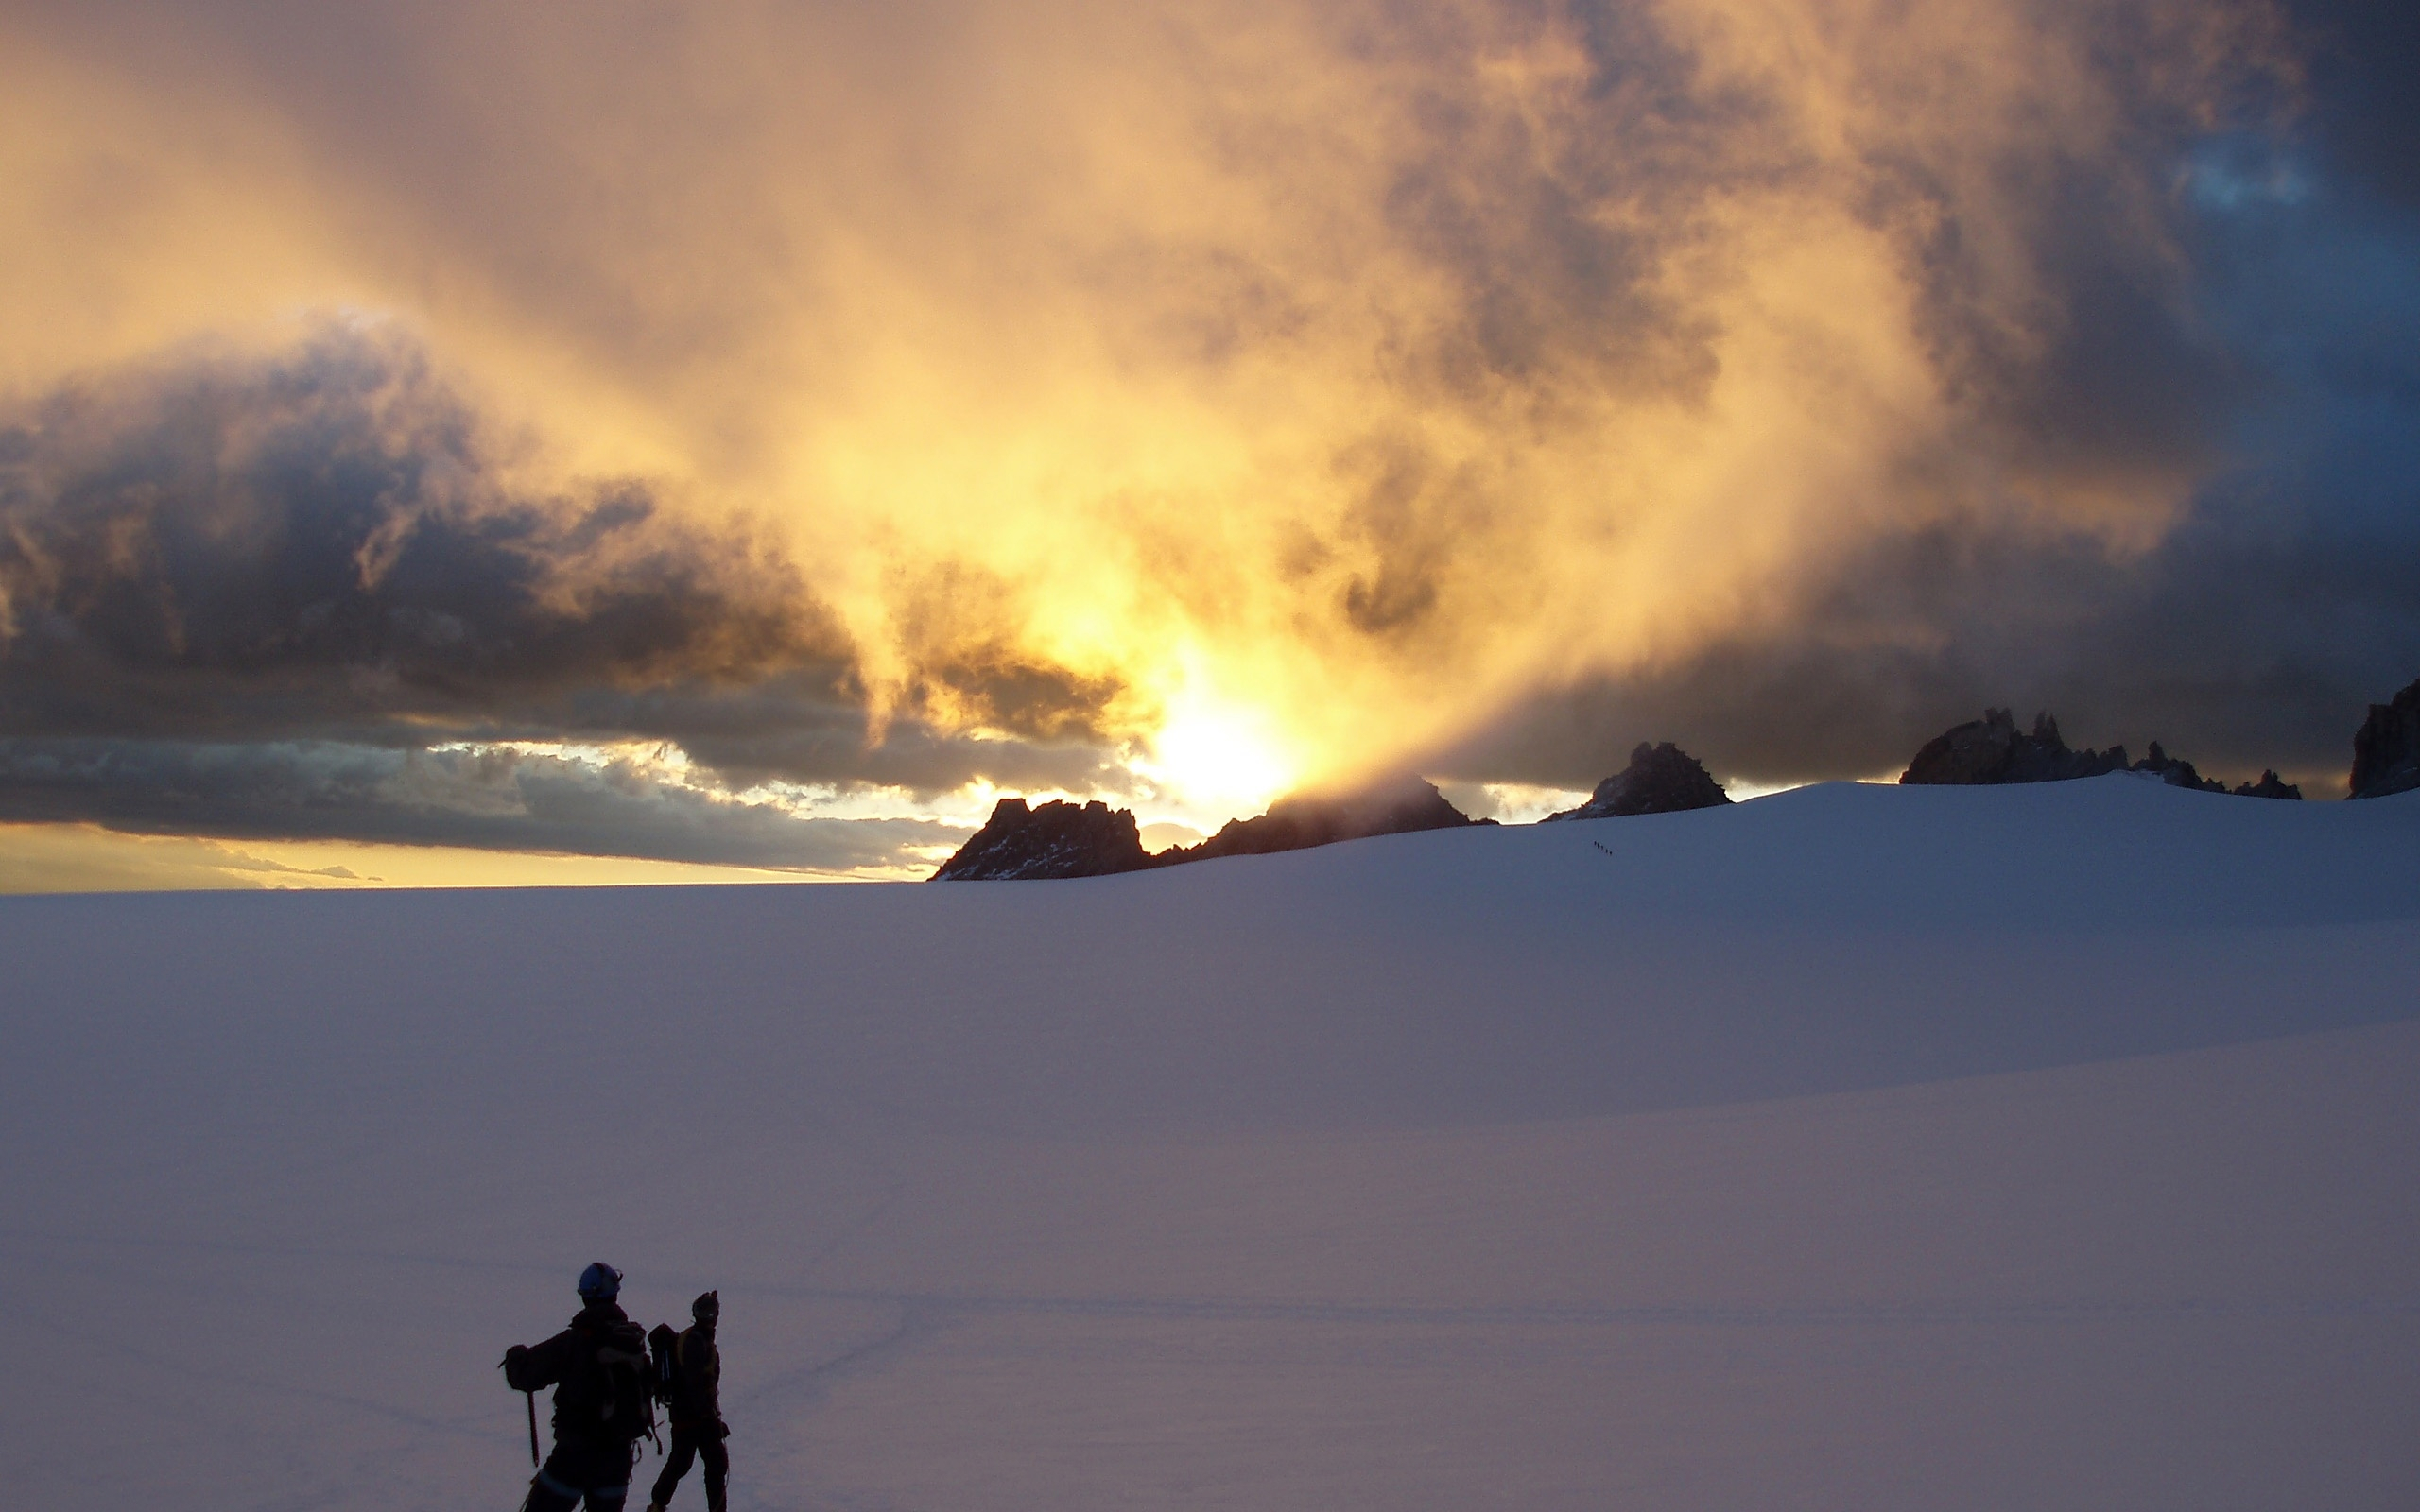 2560x1600 - Mountaineering Wallpapers 27